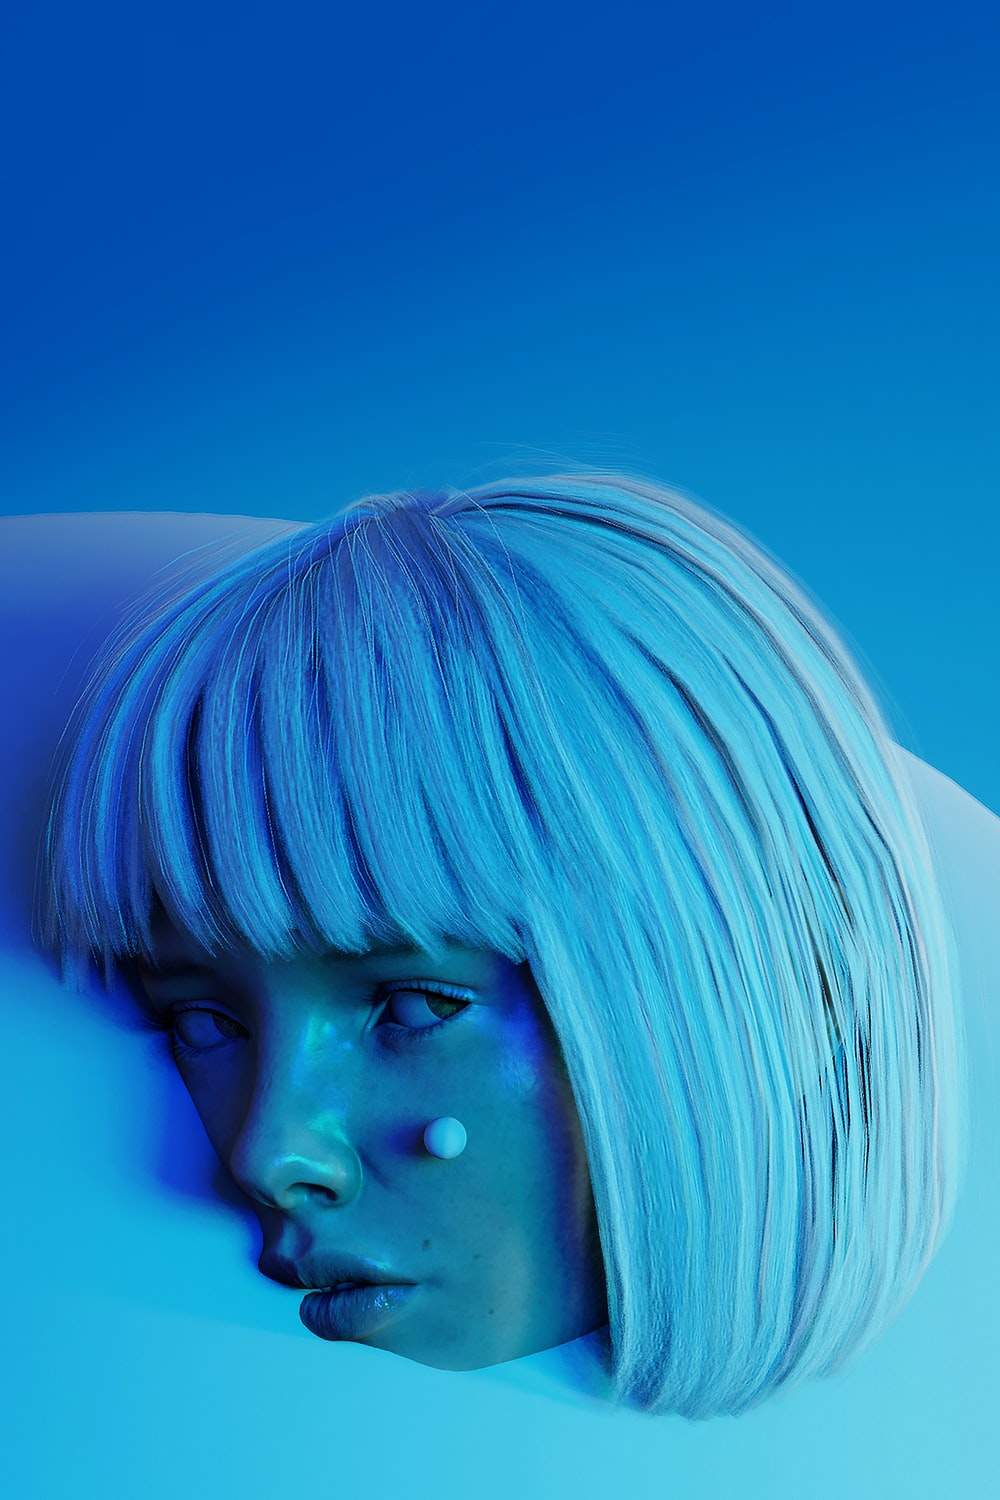 woman with blue hair looking at her left side